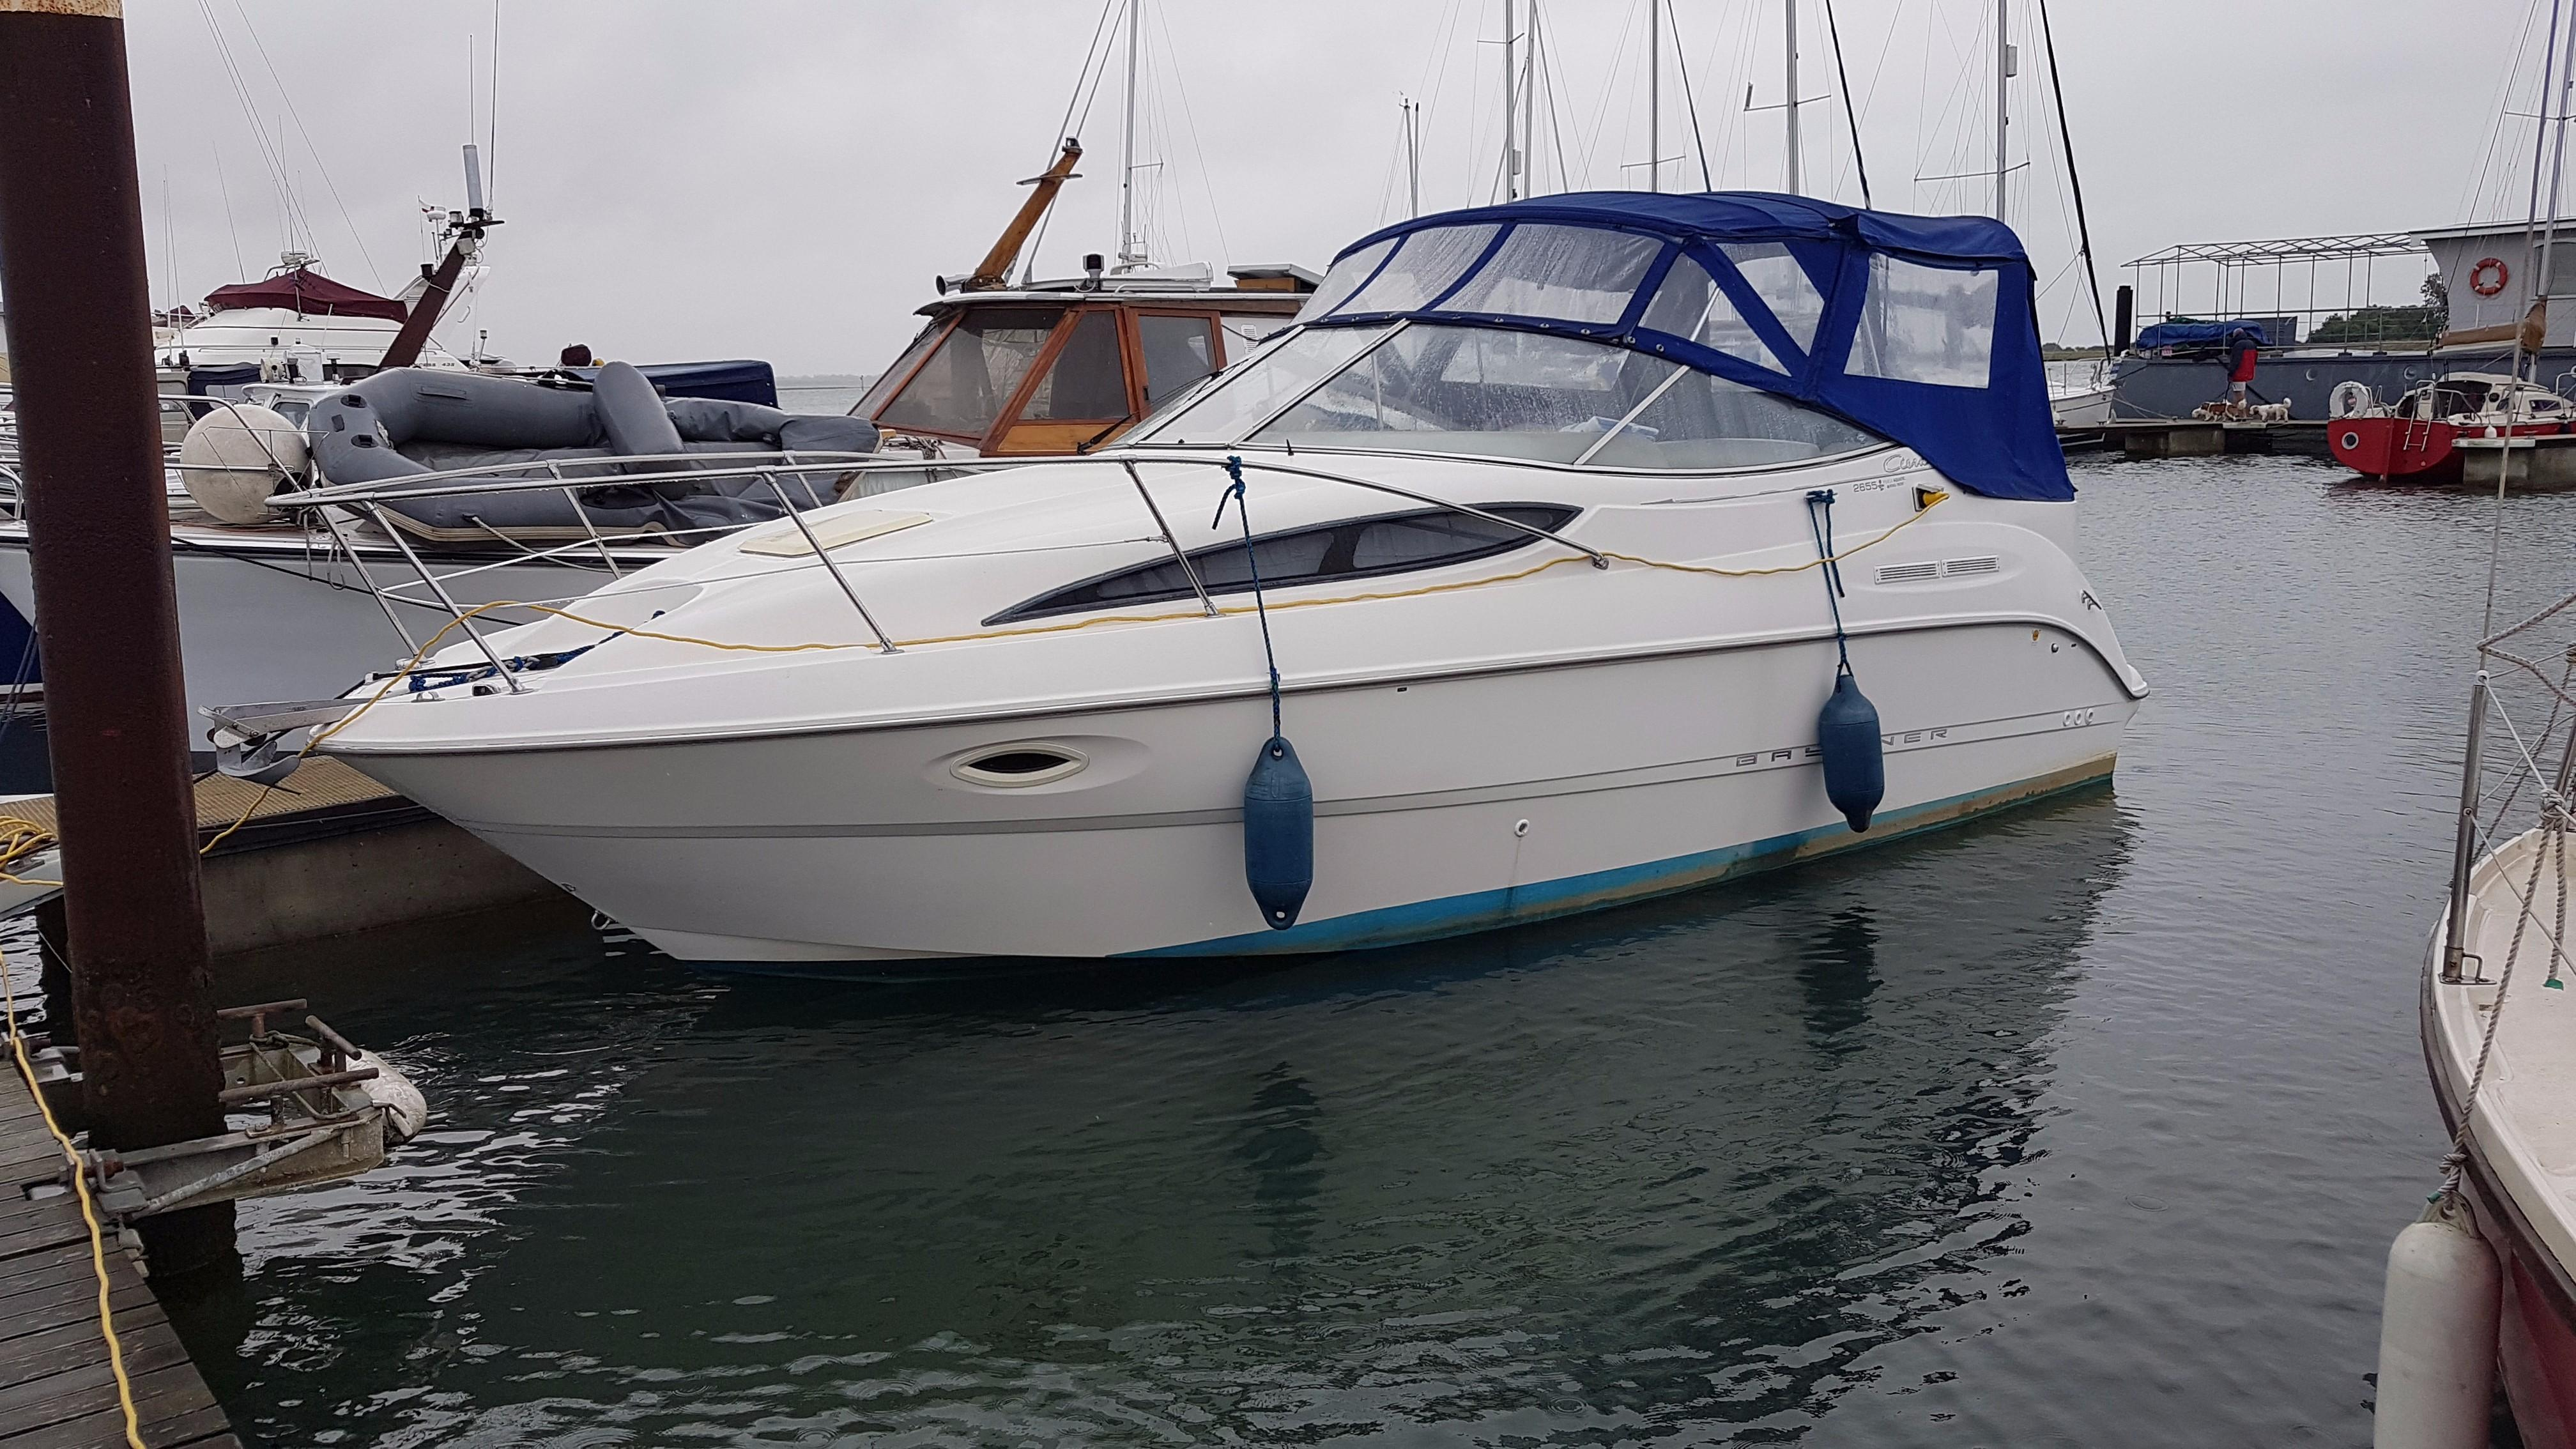 6306838_20170720023900533_1_XLARGE&w=4032&h=2268&t=1500547861000 search boats for sale yachtworld com 1988 bayliner 2655 wiring diagram at panicattacktreatment.co